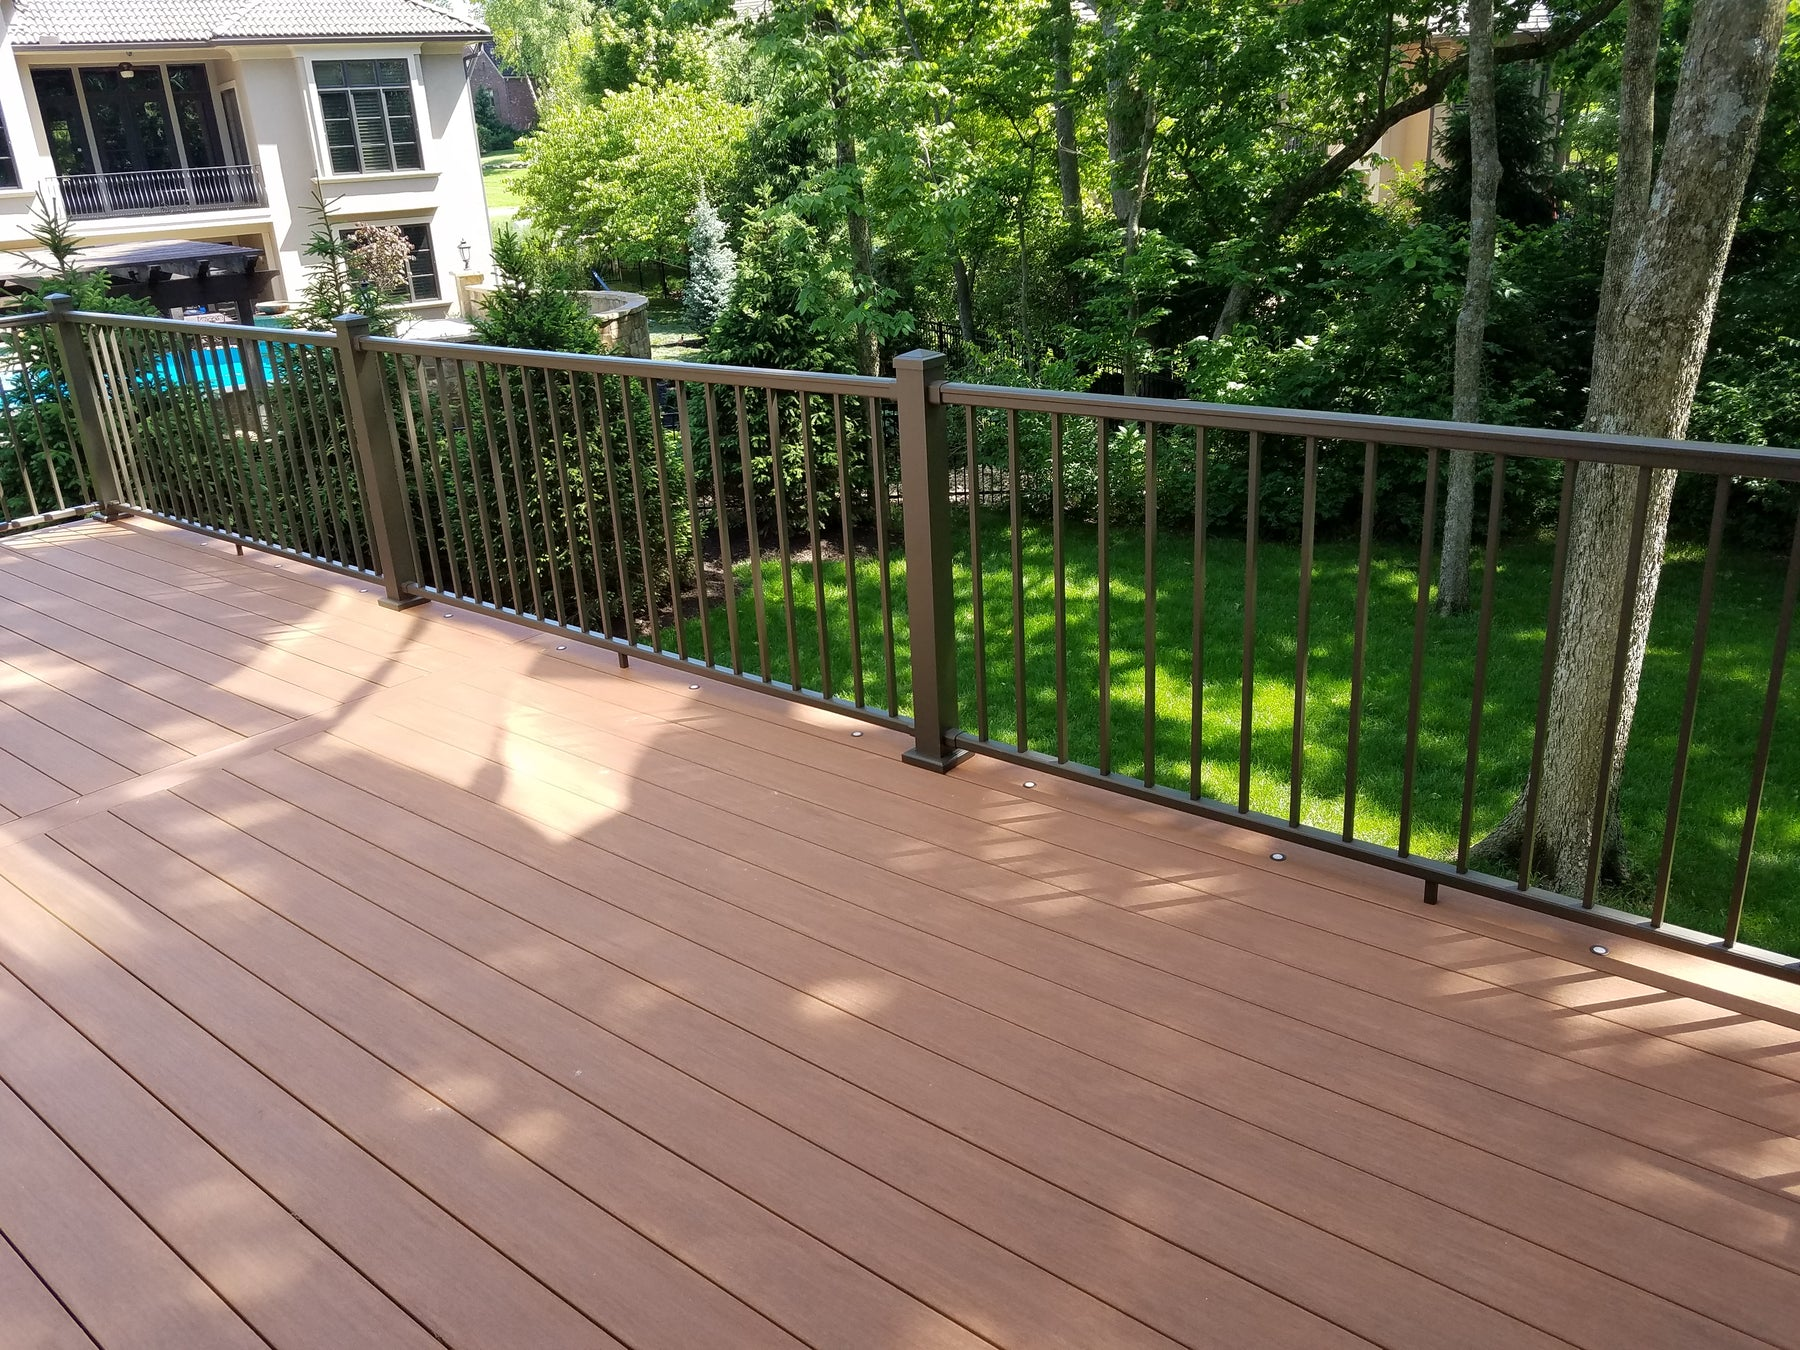 Azek Vintage Decking hidden fastened with cortex screws and plugs and original inpression rail with lighted deck dots. Impression rail is no longer an available railing option.